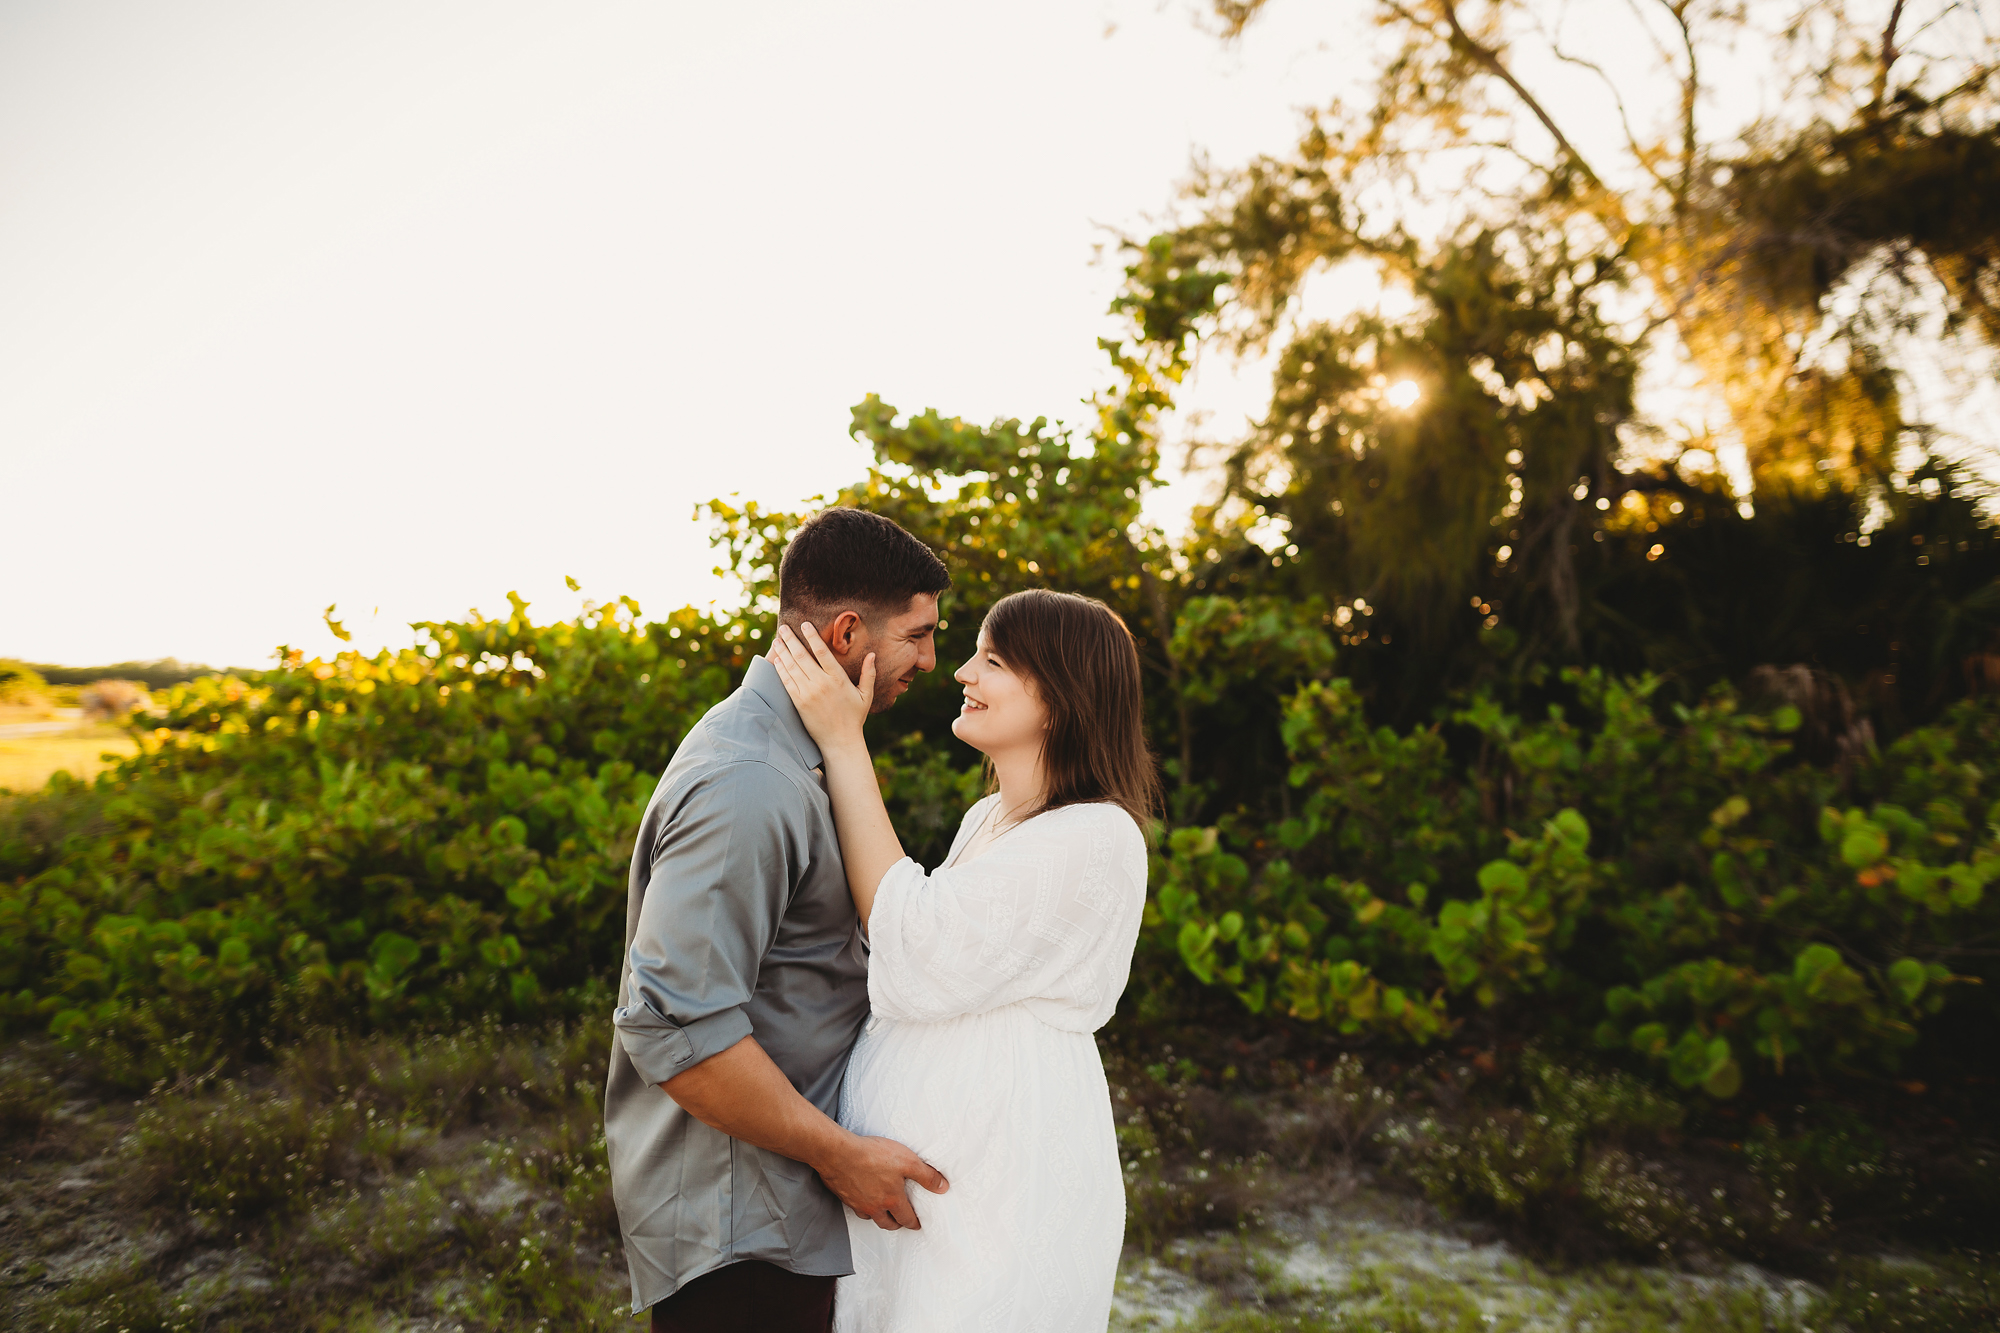 couples maternity photo shoot, pinellas county fl